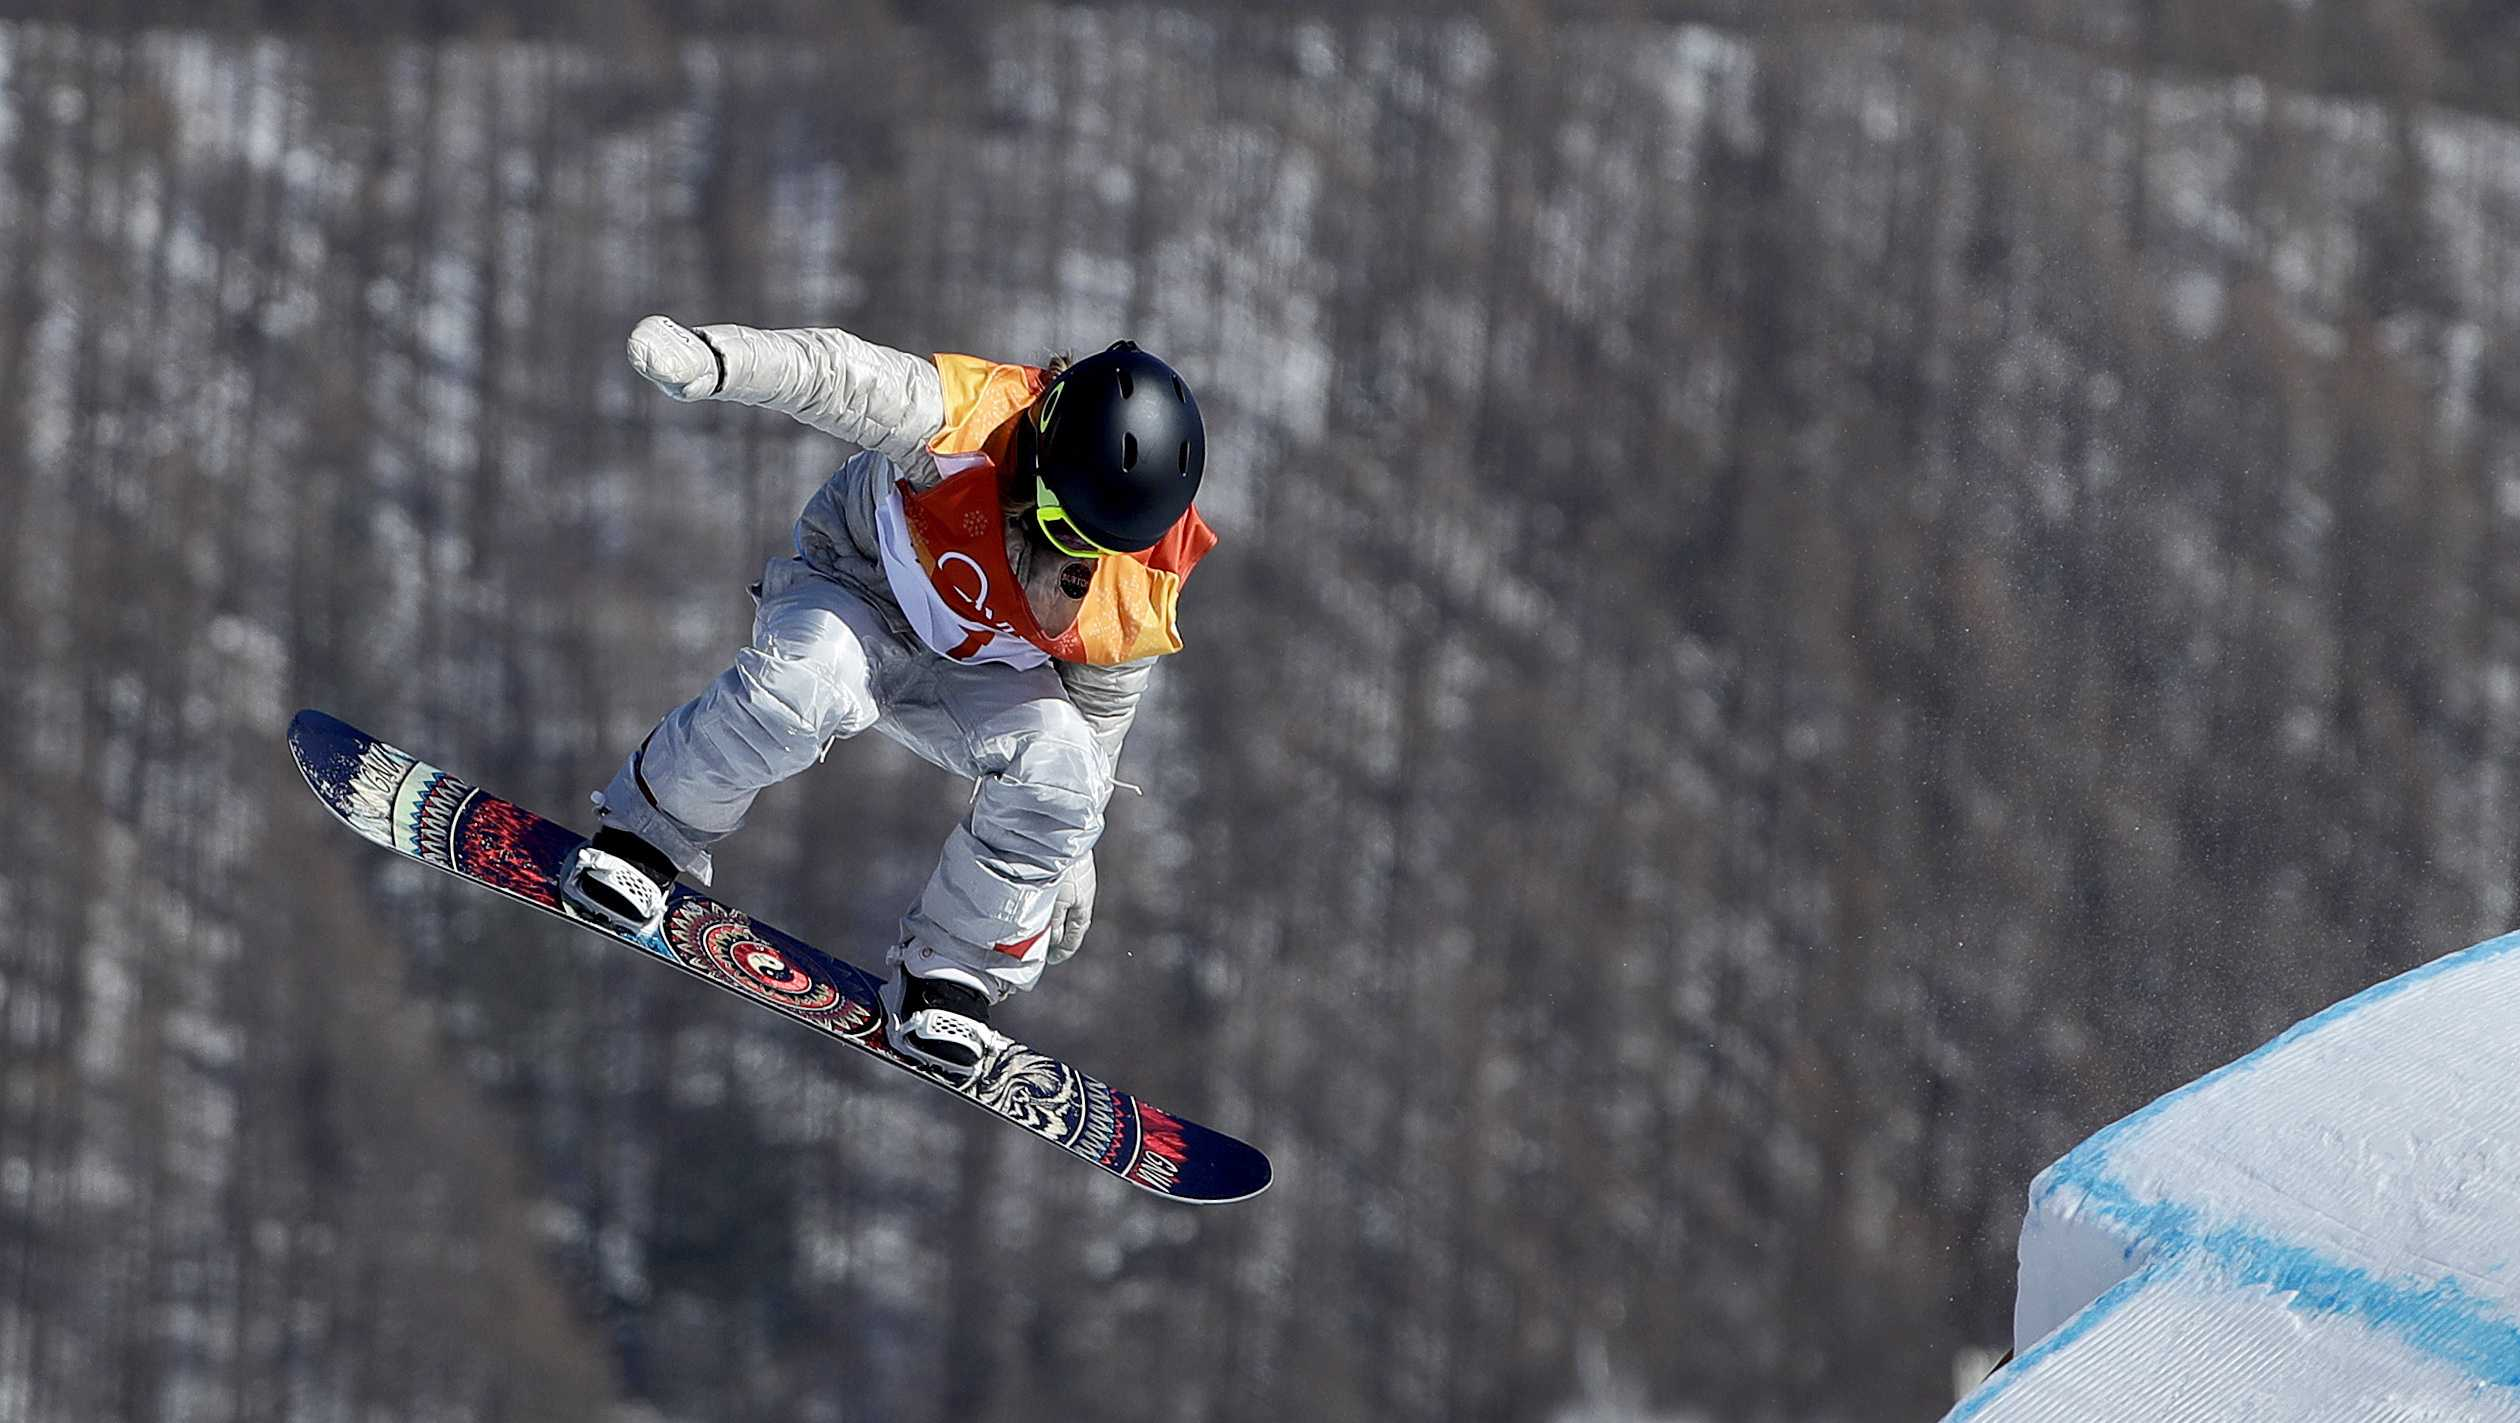 Jamie Anderson, of the United States, jumps during the women's slopestyle final at Phoenix Snow Park at the 2018 Winter Olympics in Pyeongchang, South Korea, Monday, Feb. 12, 2018.